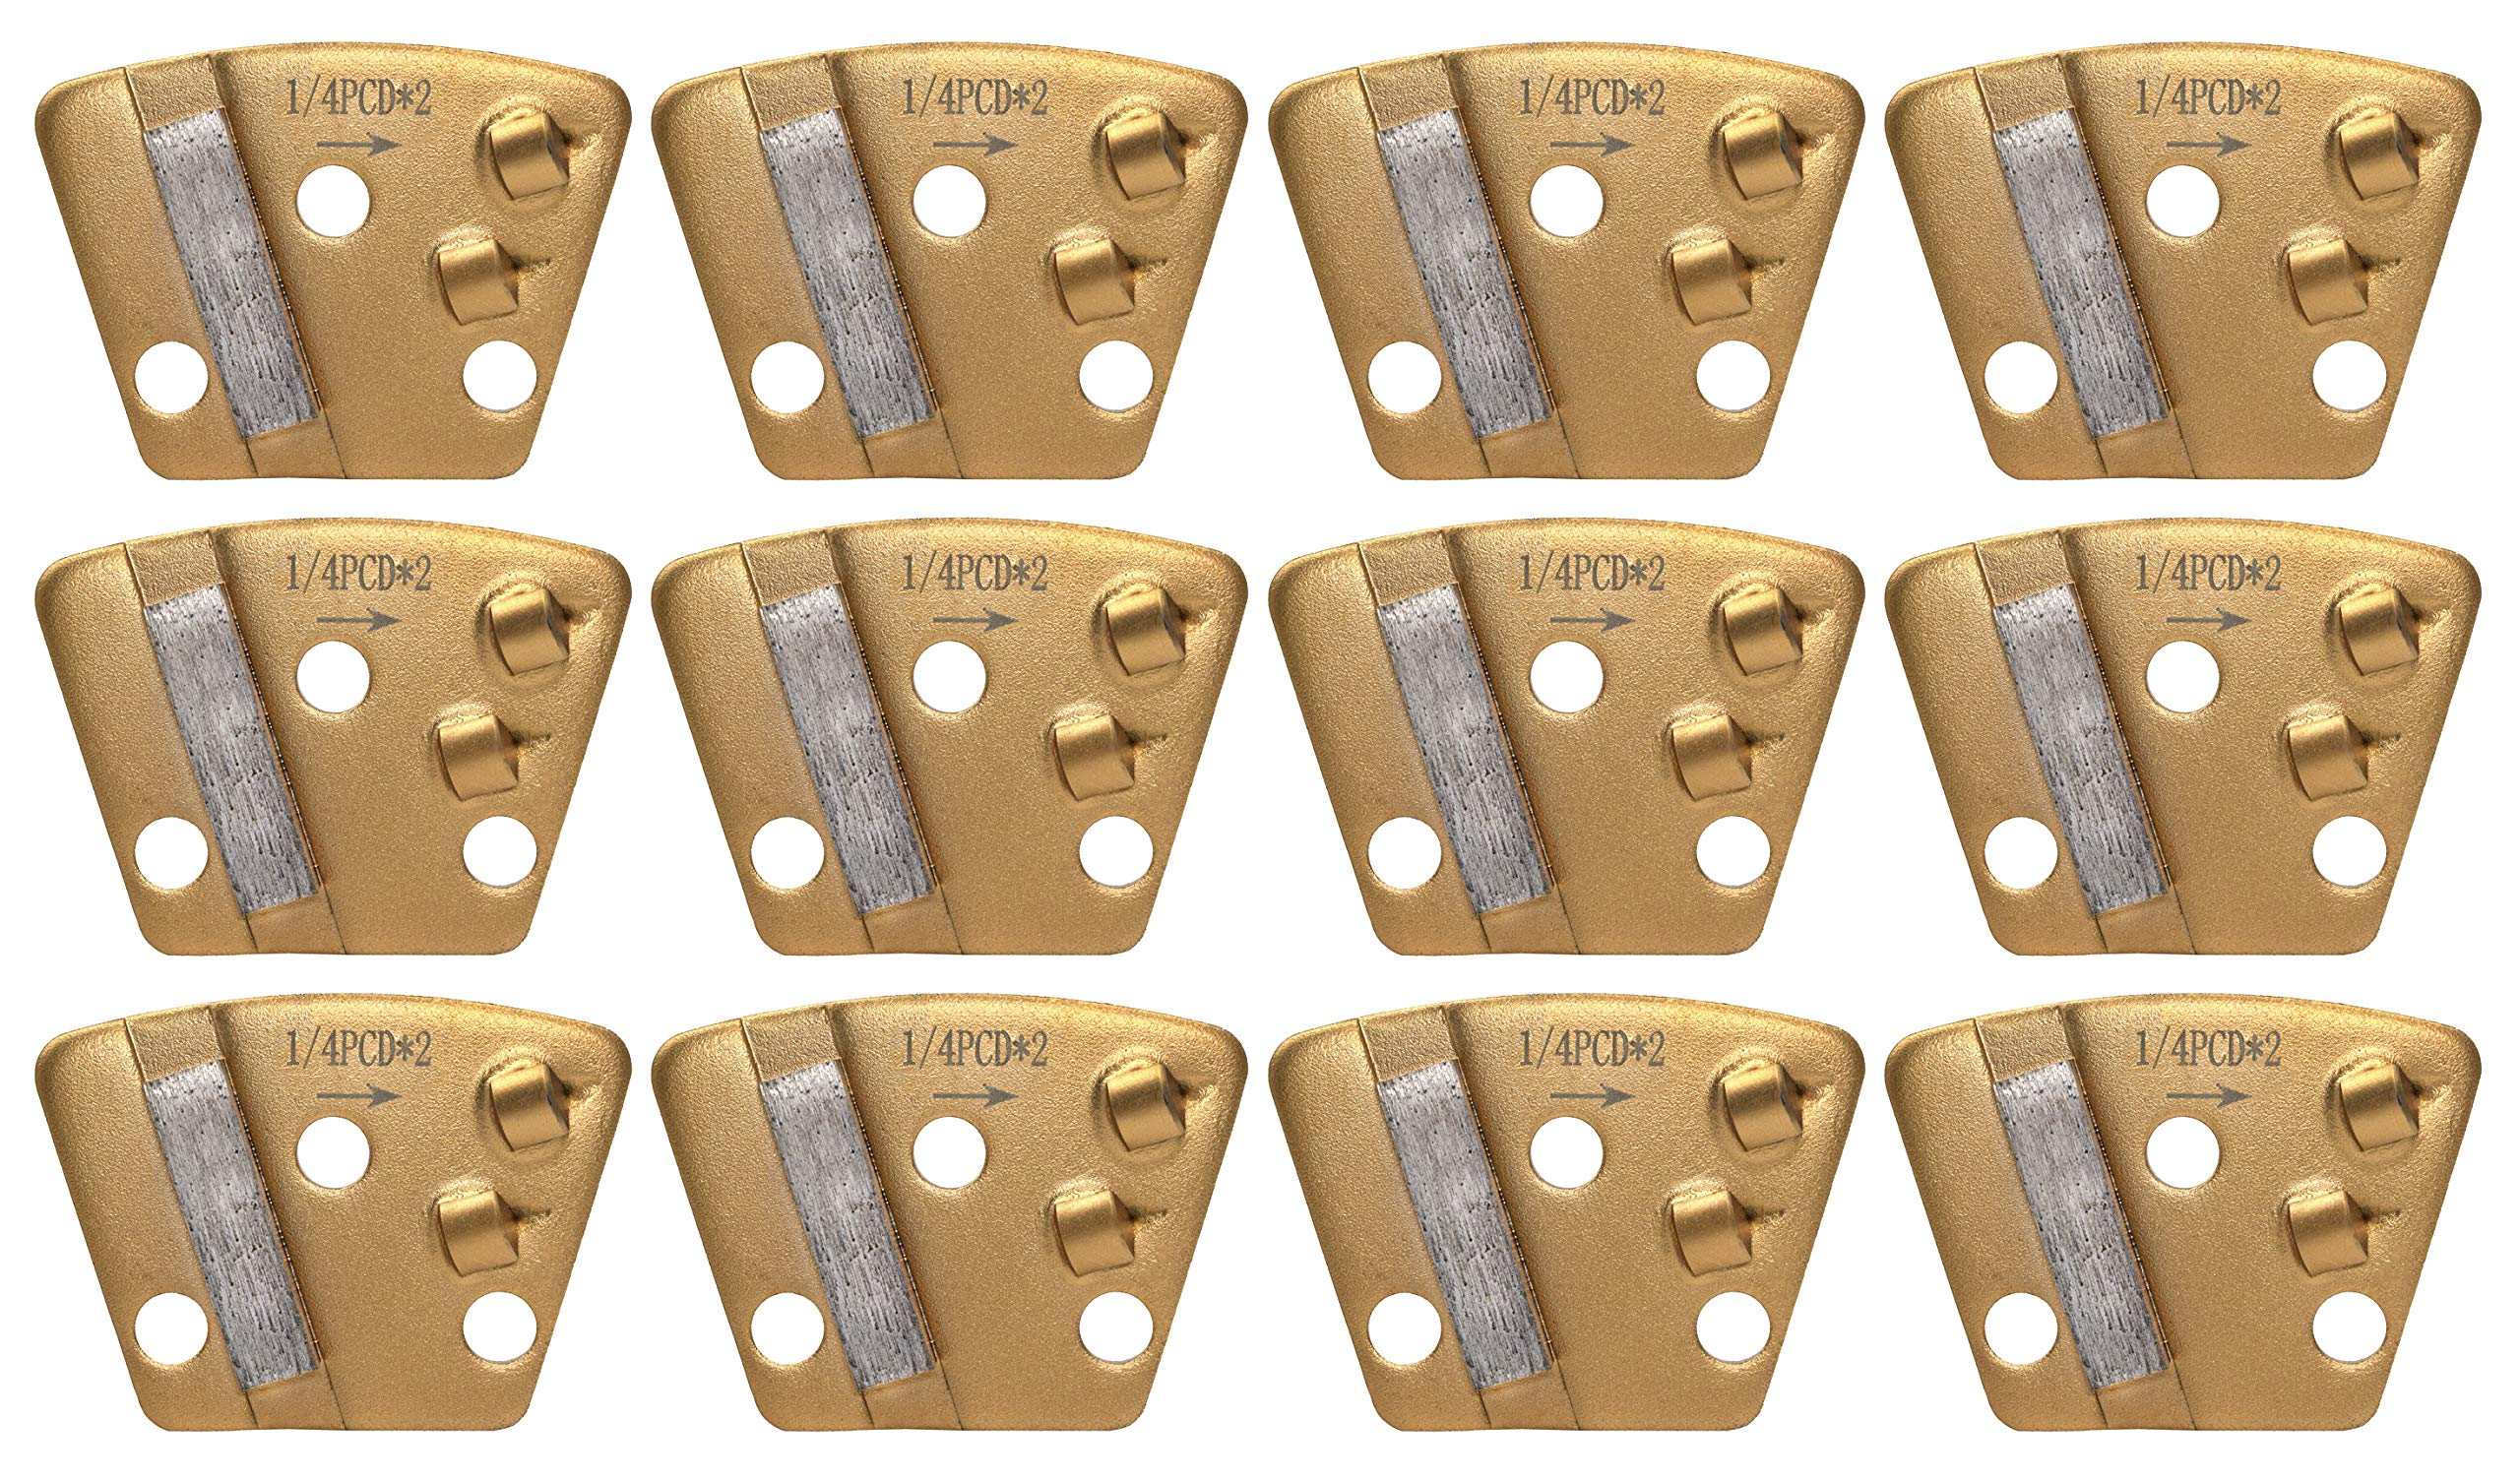 2 Quarter Rounds PCD Trapezoid with 16 Diamond Grit - Left - Heavy Scraping & Surface Coating Removal - Pack of 12 - Dragon Tooling